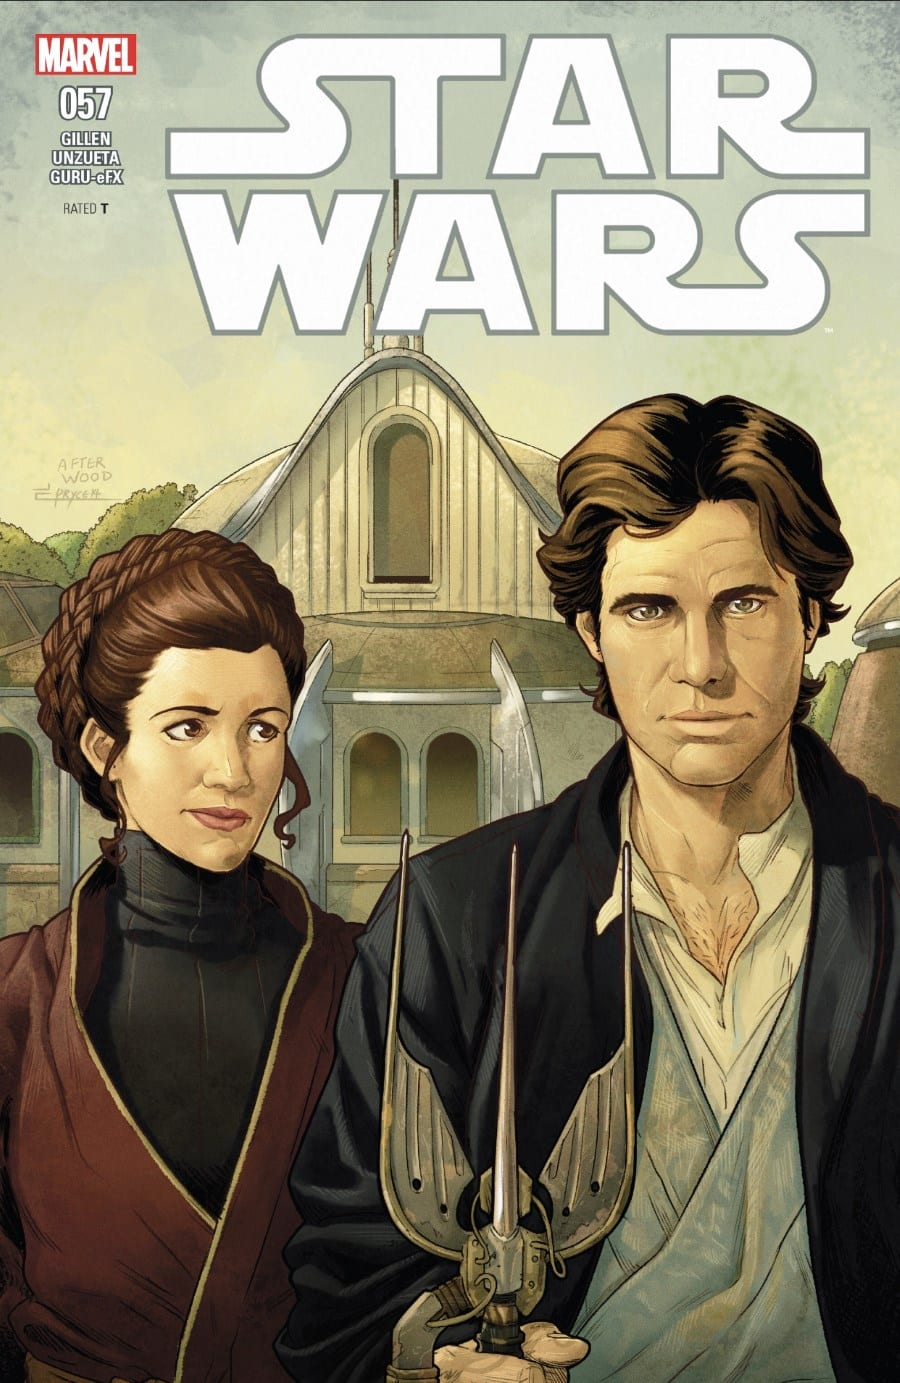 Star Wars #57 Cover